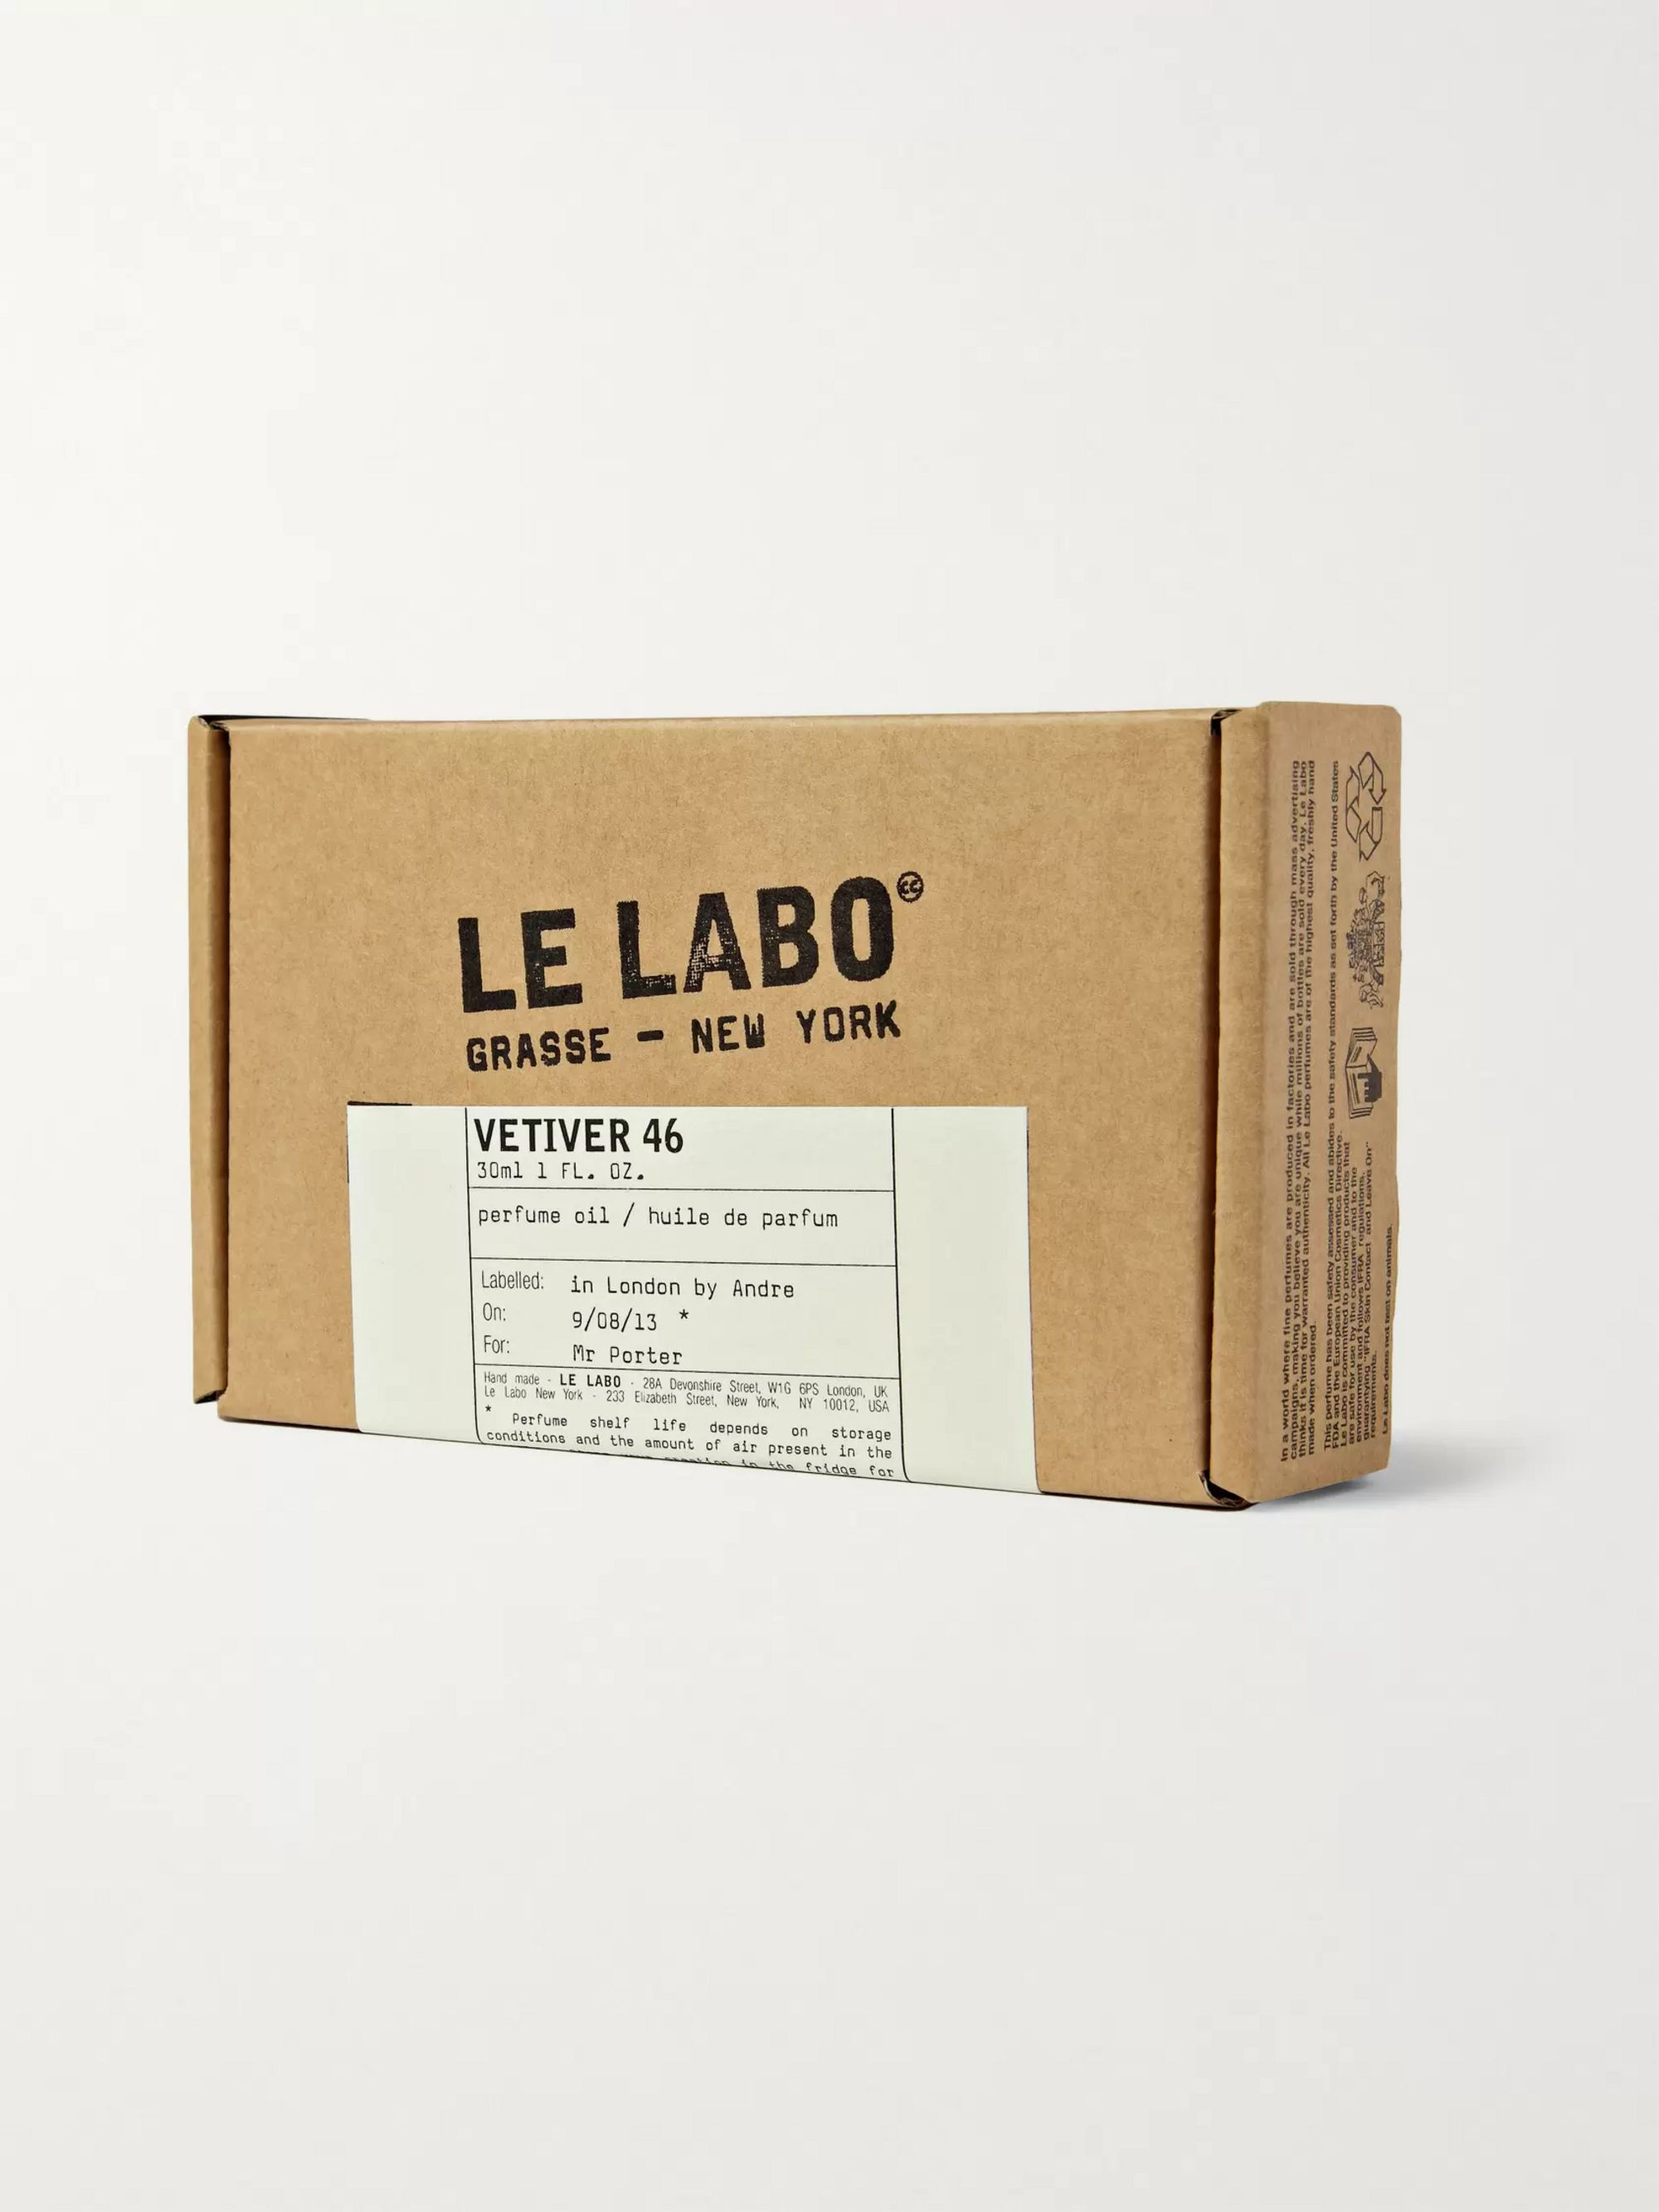 Le Labo Vetiver 46 Perfume Oil - Haitian Vetiver & Pepper, 30ml